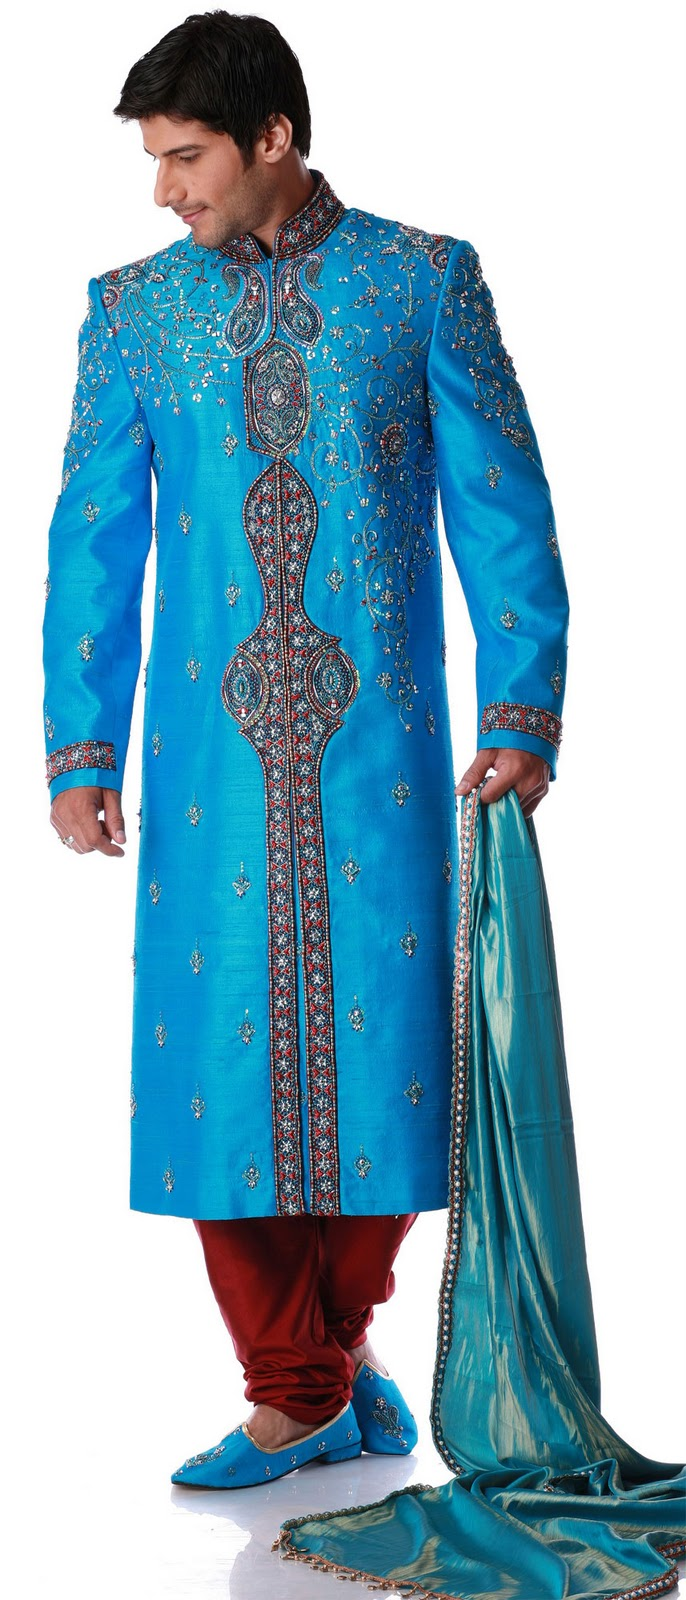 Men Fashion Dresses: Blue Sherwani with Embroidered - Wedding ...